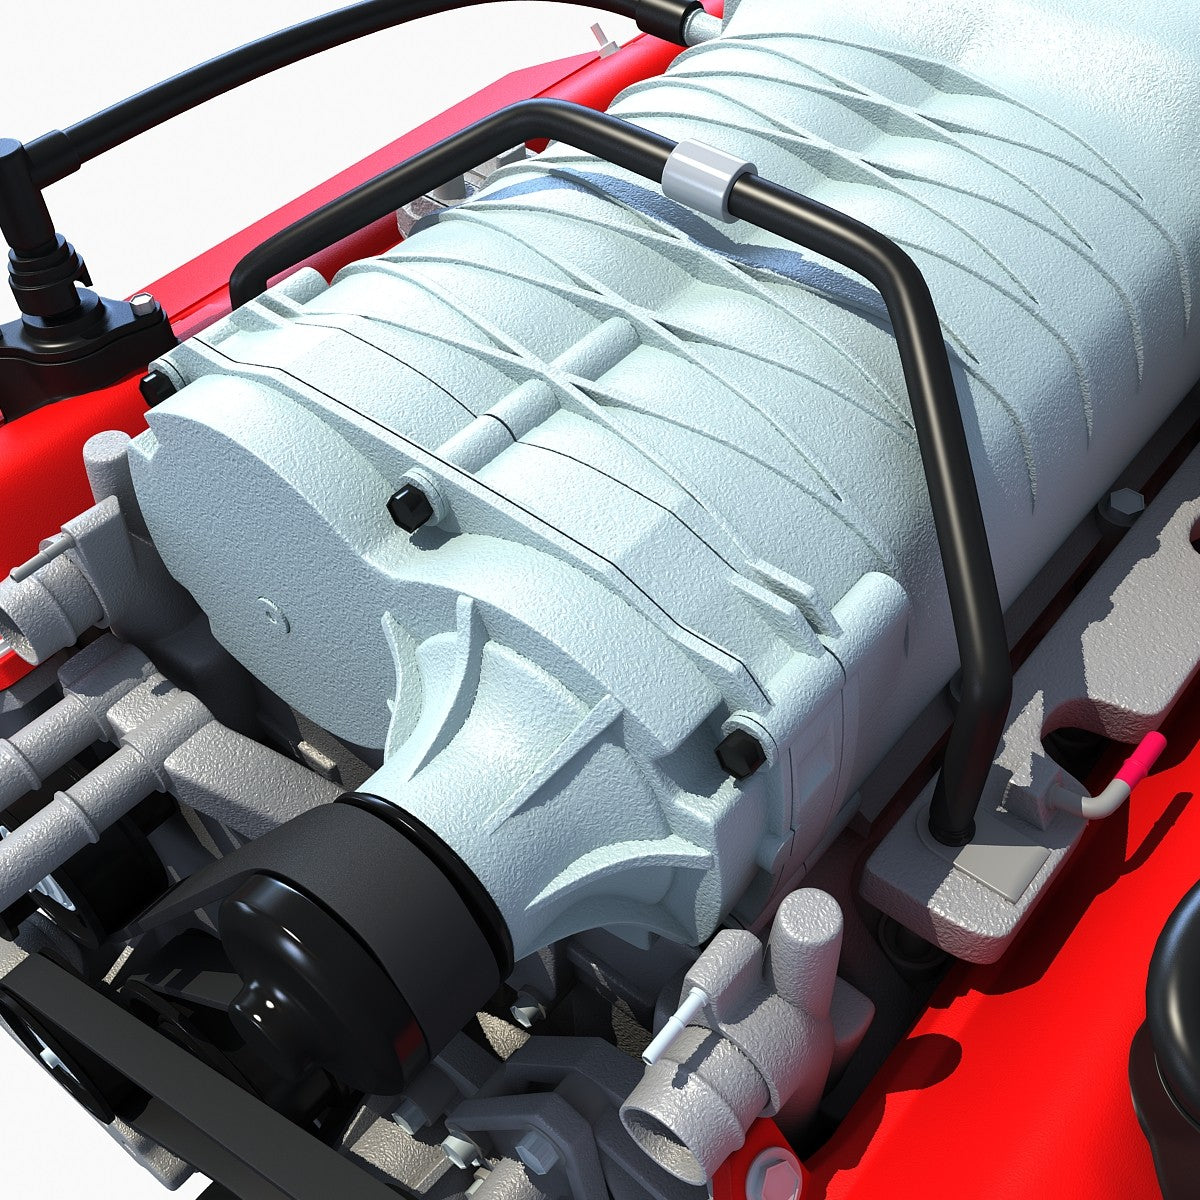 3D Ford Mustang Shelby Engine Model